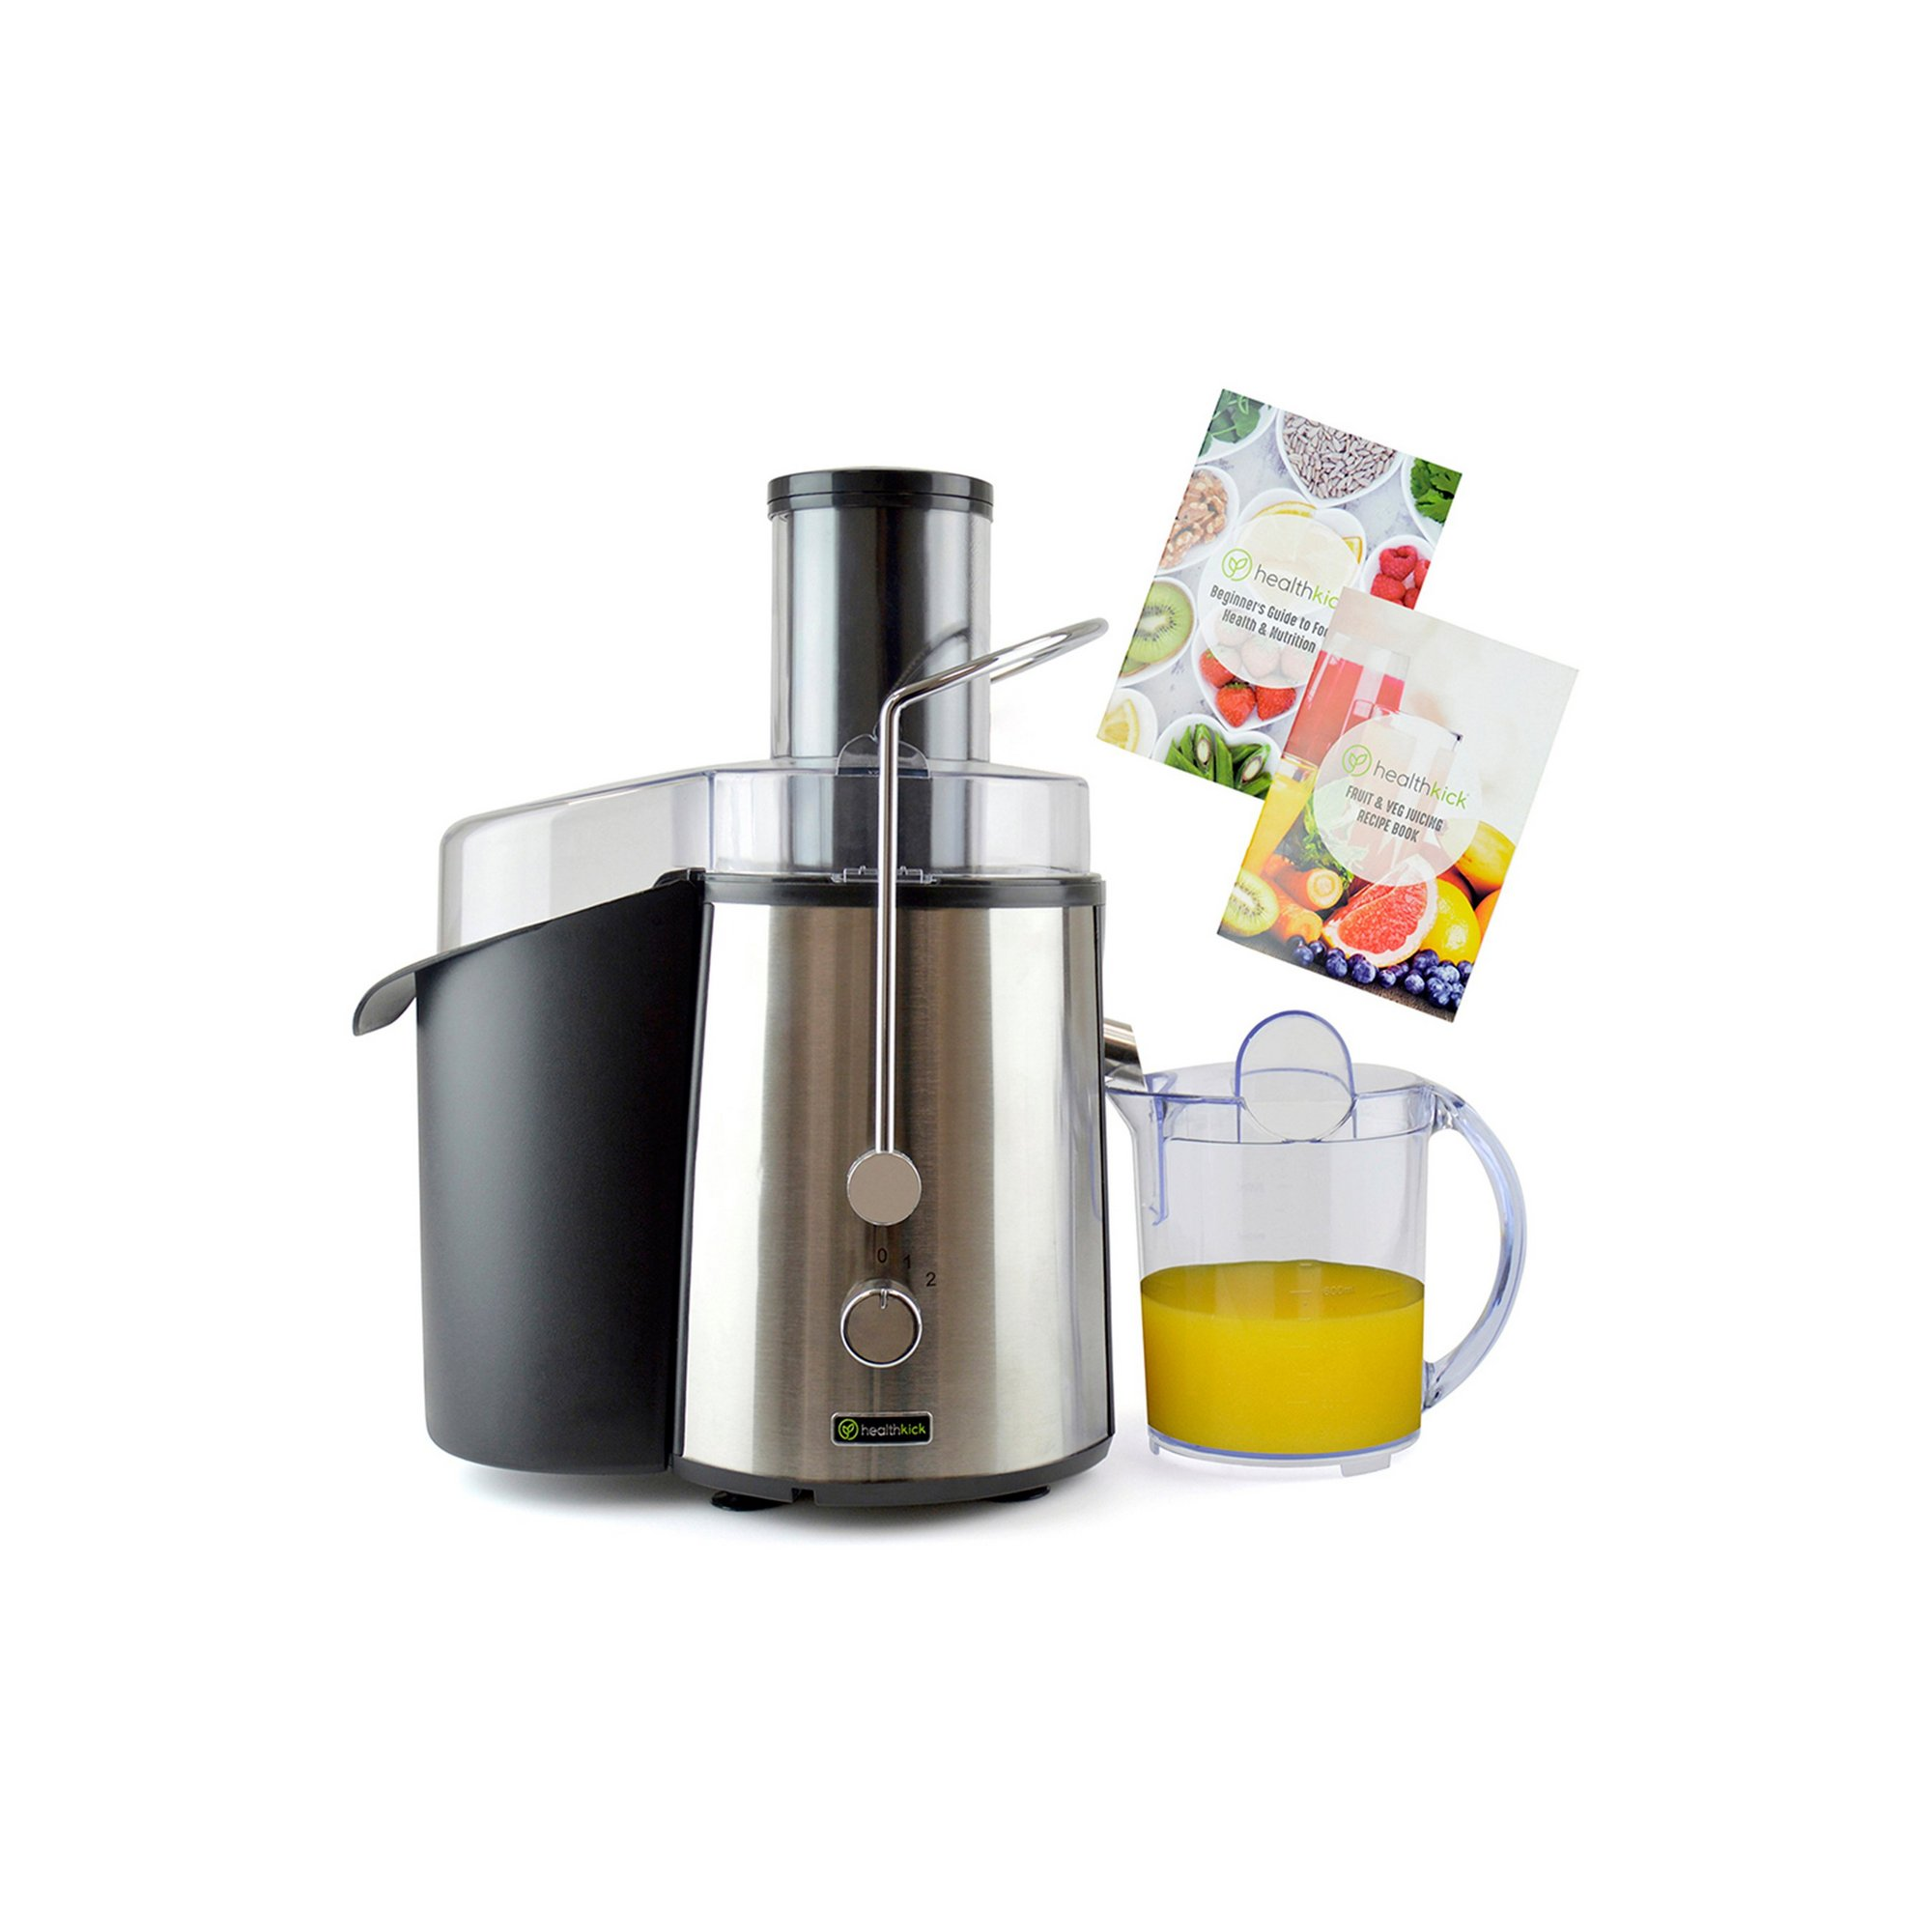 Image of Health Kick 850W Fruit and Veg Juice Extractor